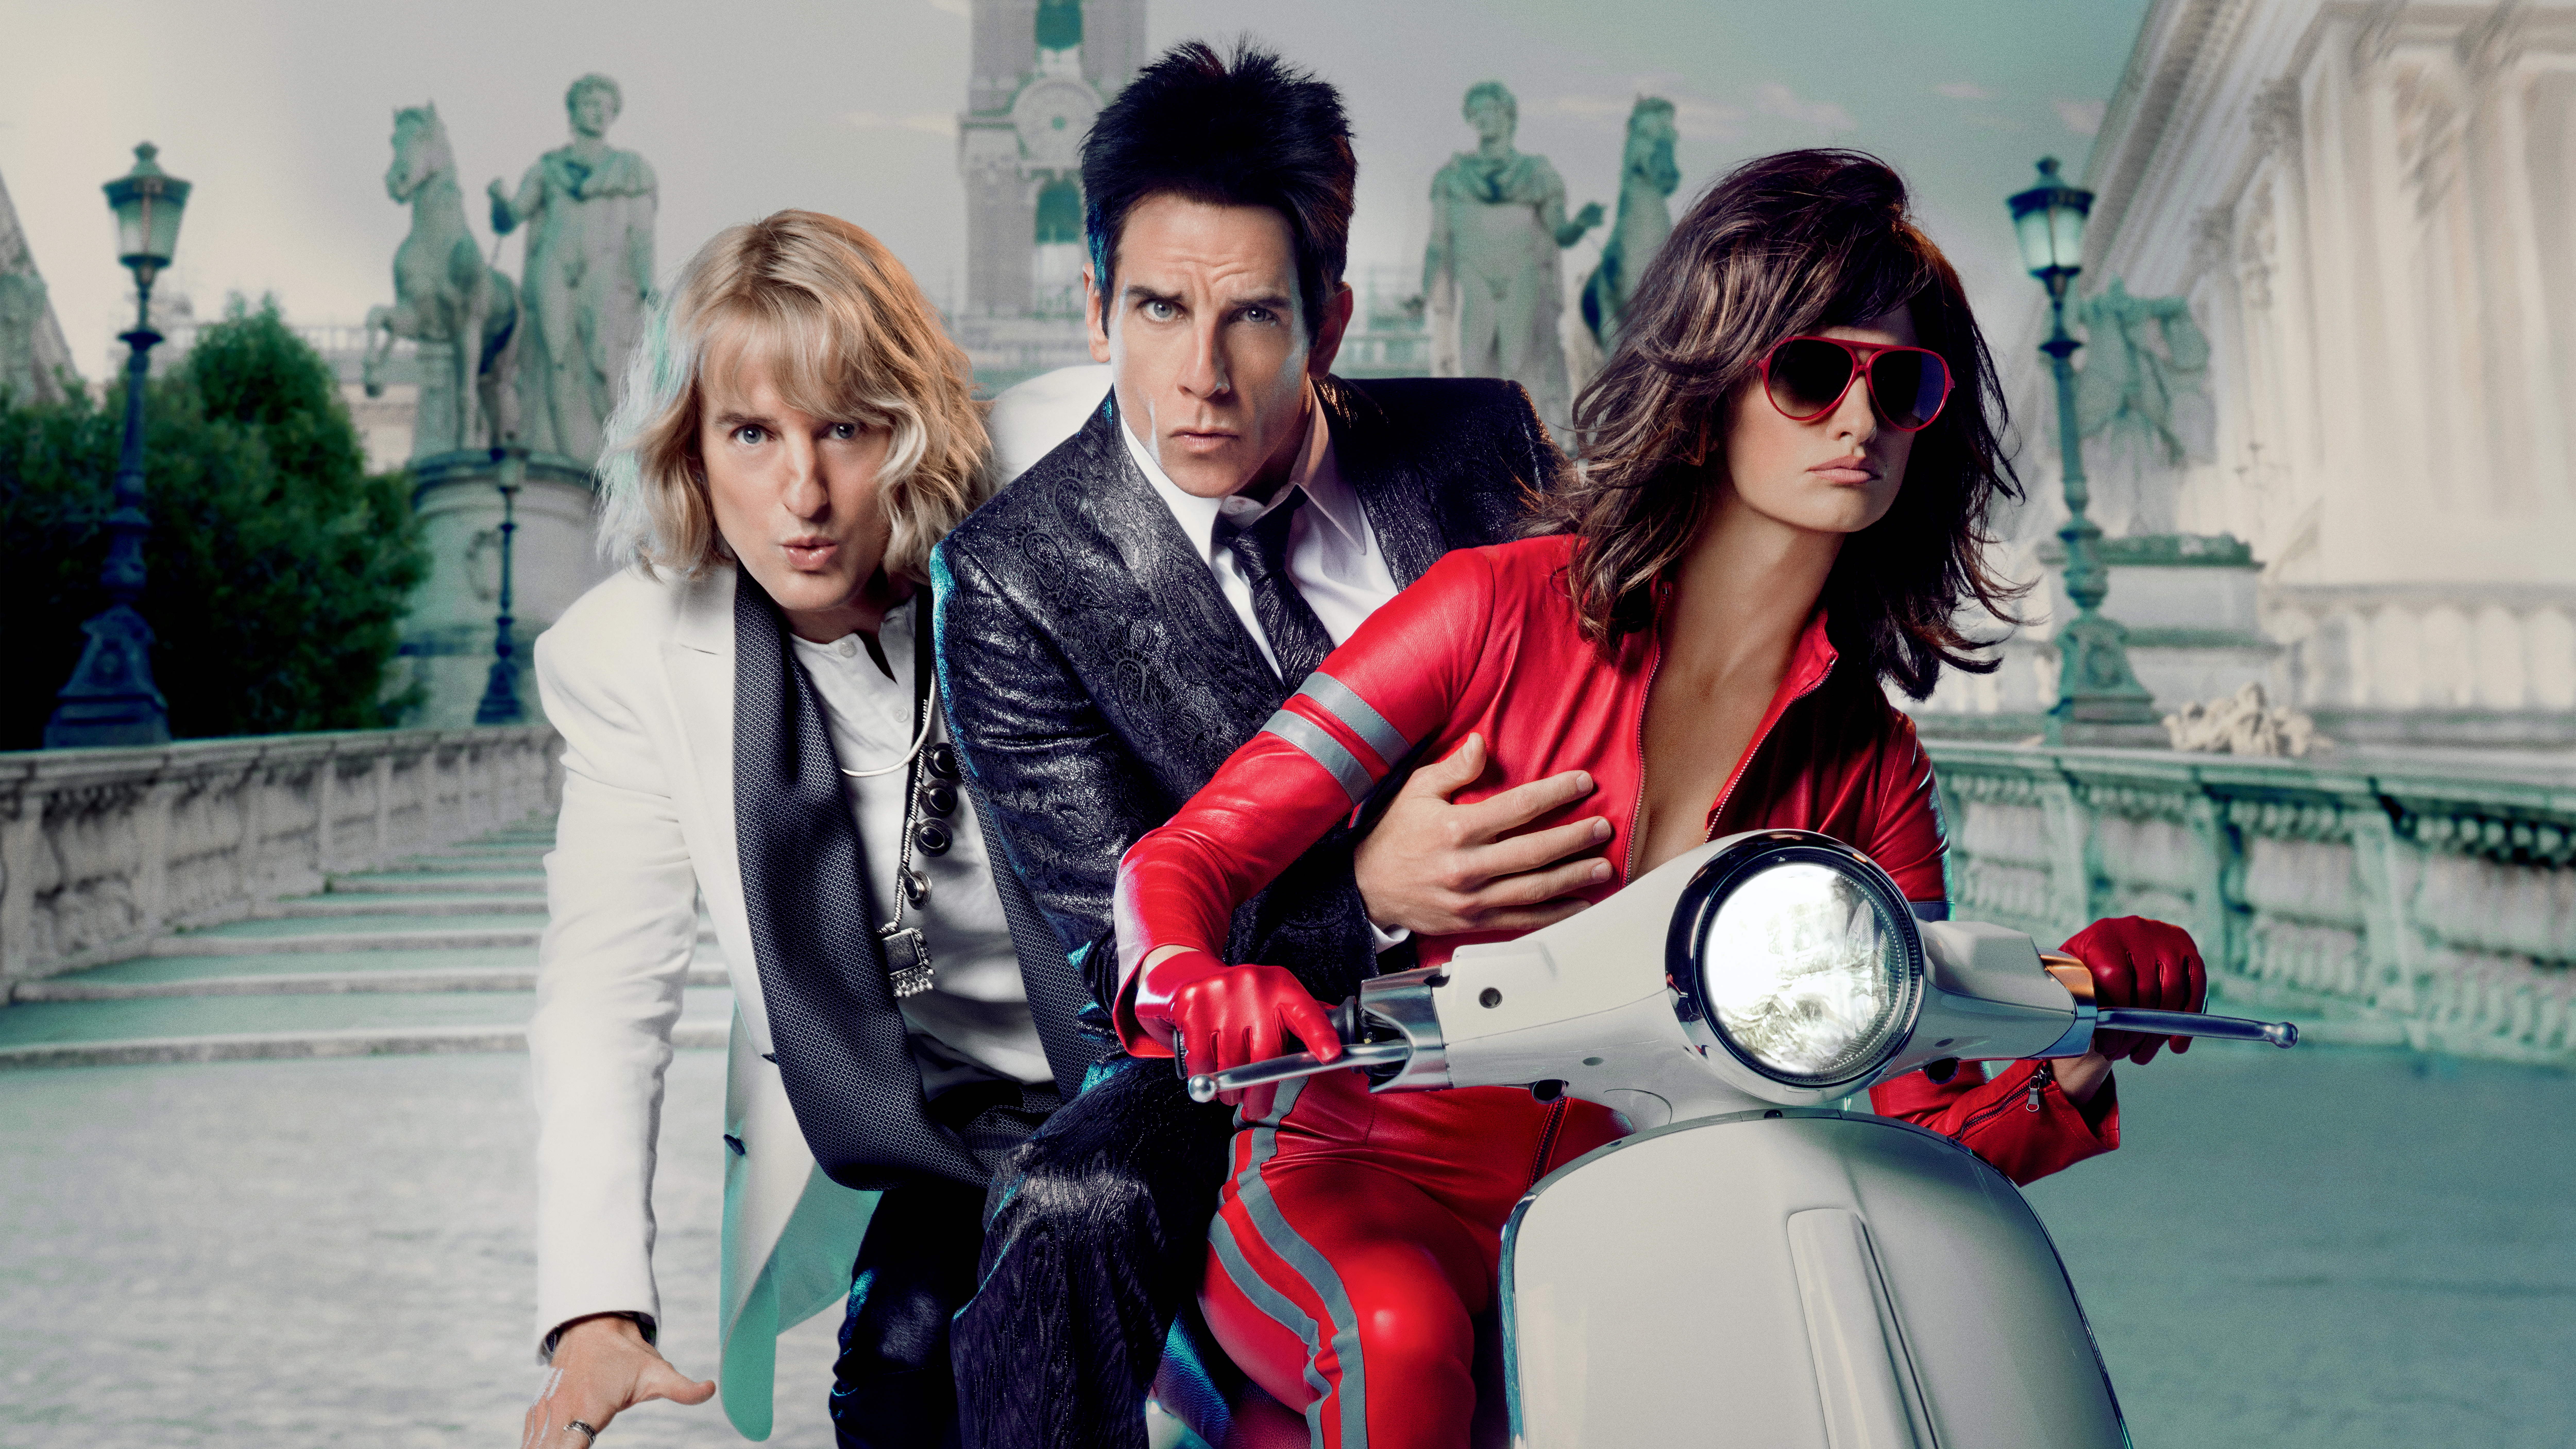 zoolander 2 1579648485 - Zoolander 2 - Zoolander 2 wallpapers 4k, Zoolander 2 movie wallpapers